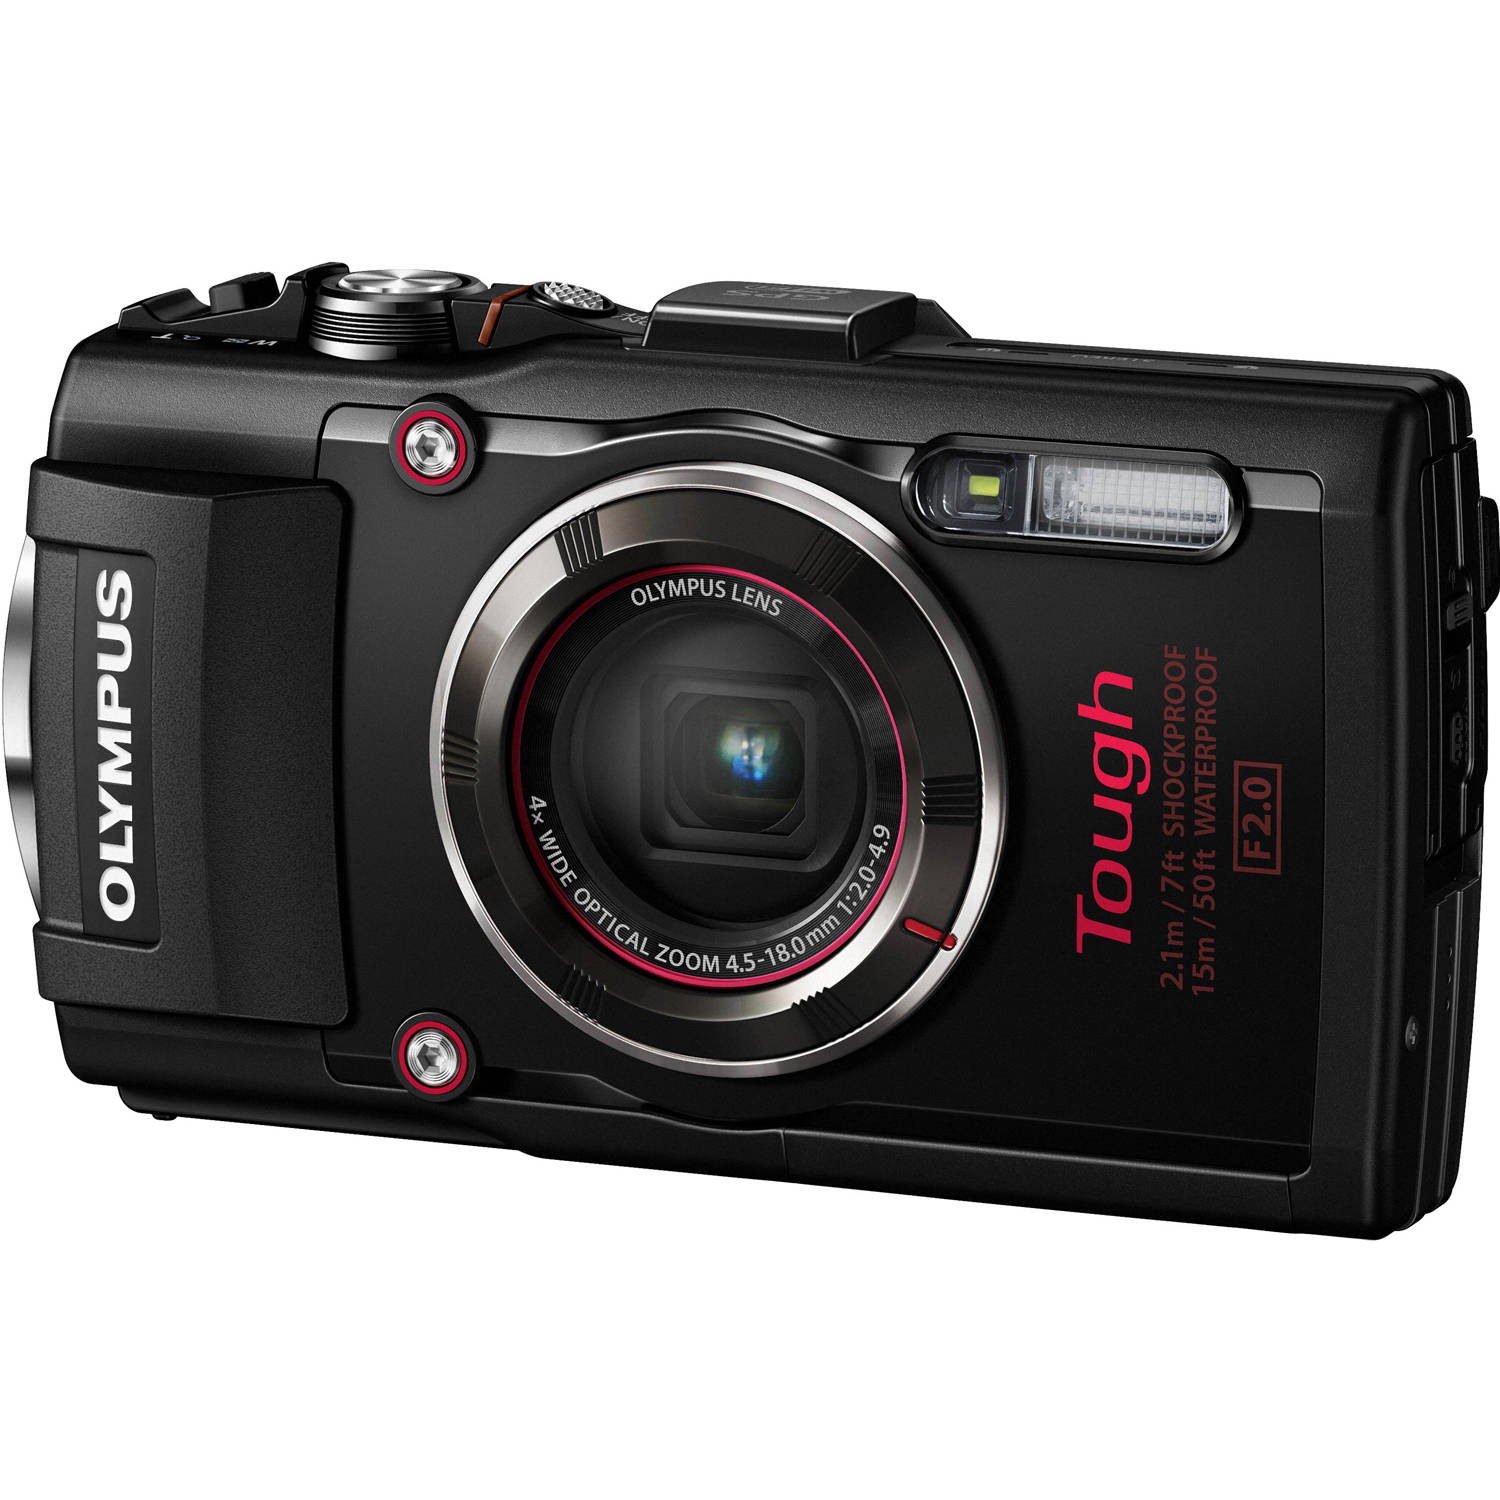 Olympus Black Tough TG-4 16MP Compact System Digital Camera with 16 Megapixels, 4x Optical Zoom and 4.5-18mm Lens Included